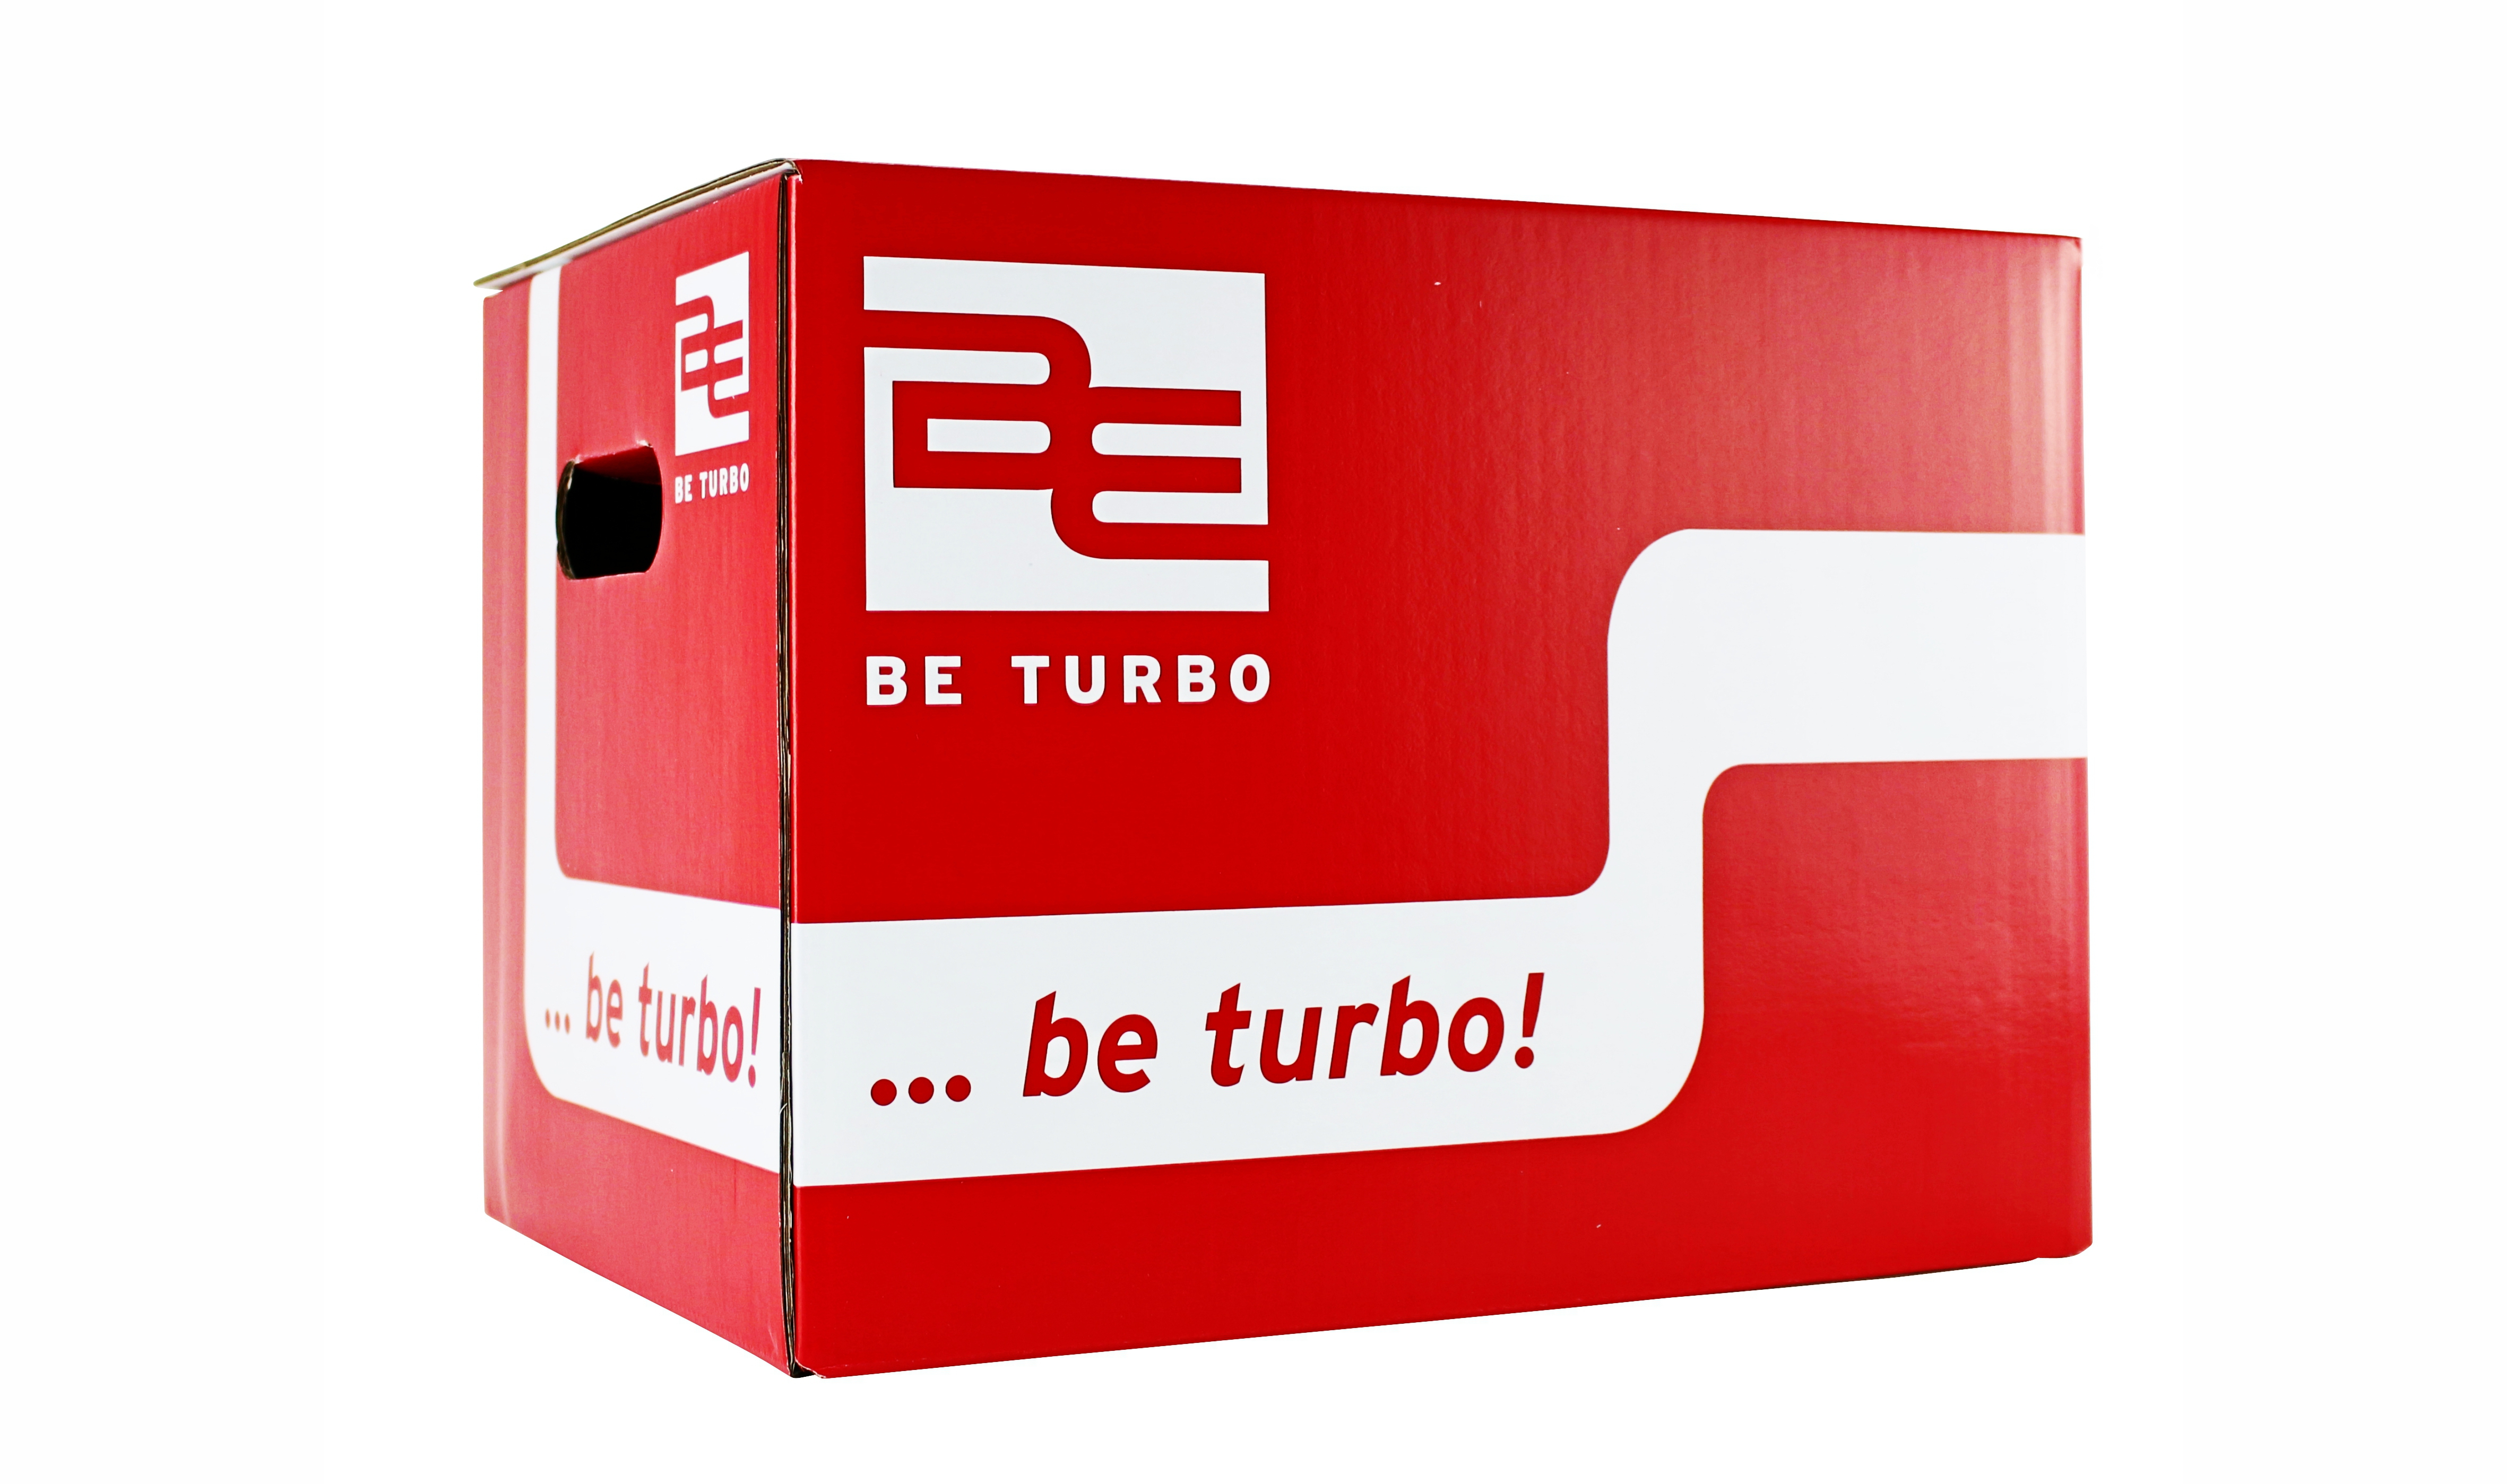 BE TURBO Turbolader RED